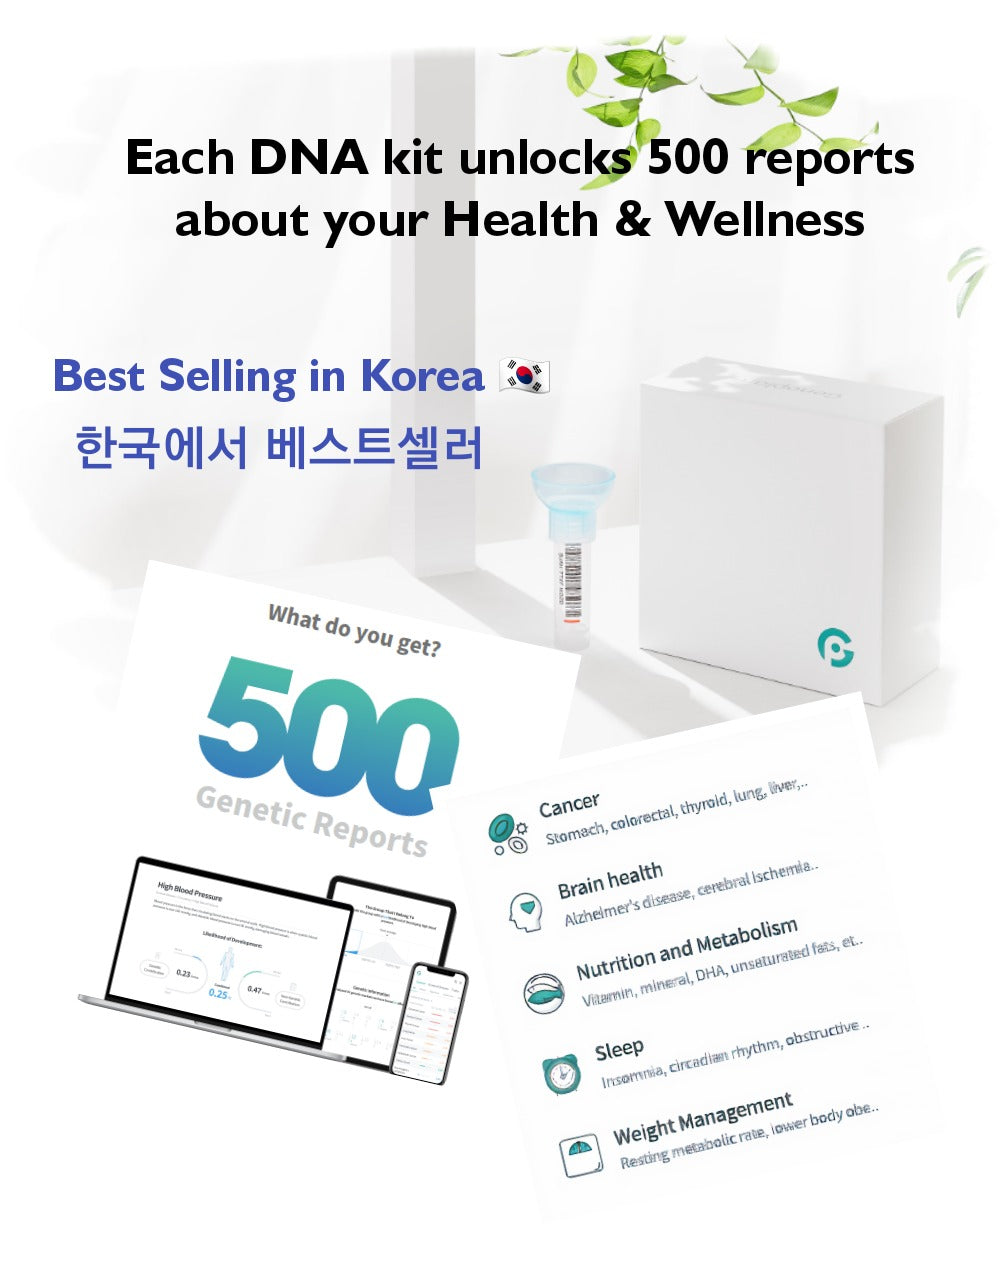 Korea Best Selling DNA Kit